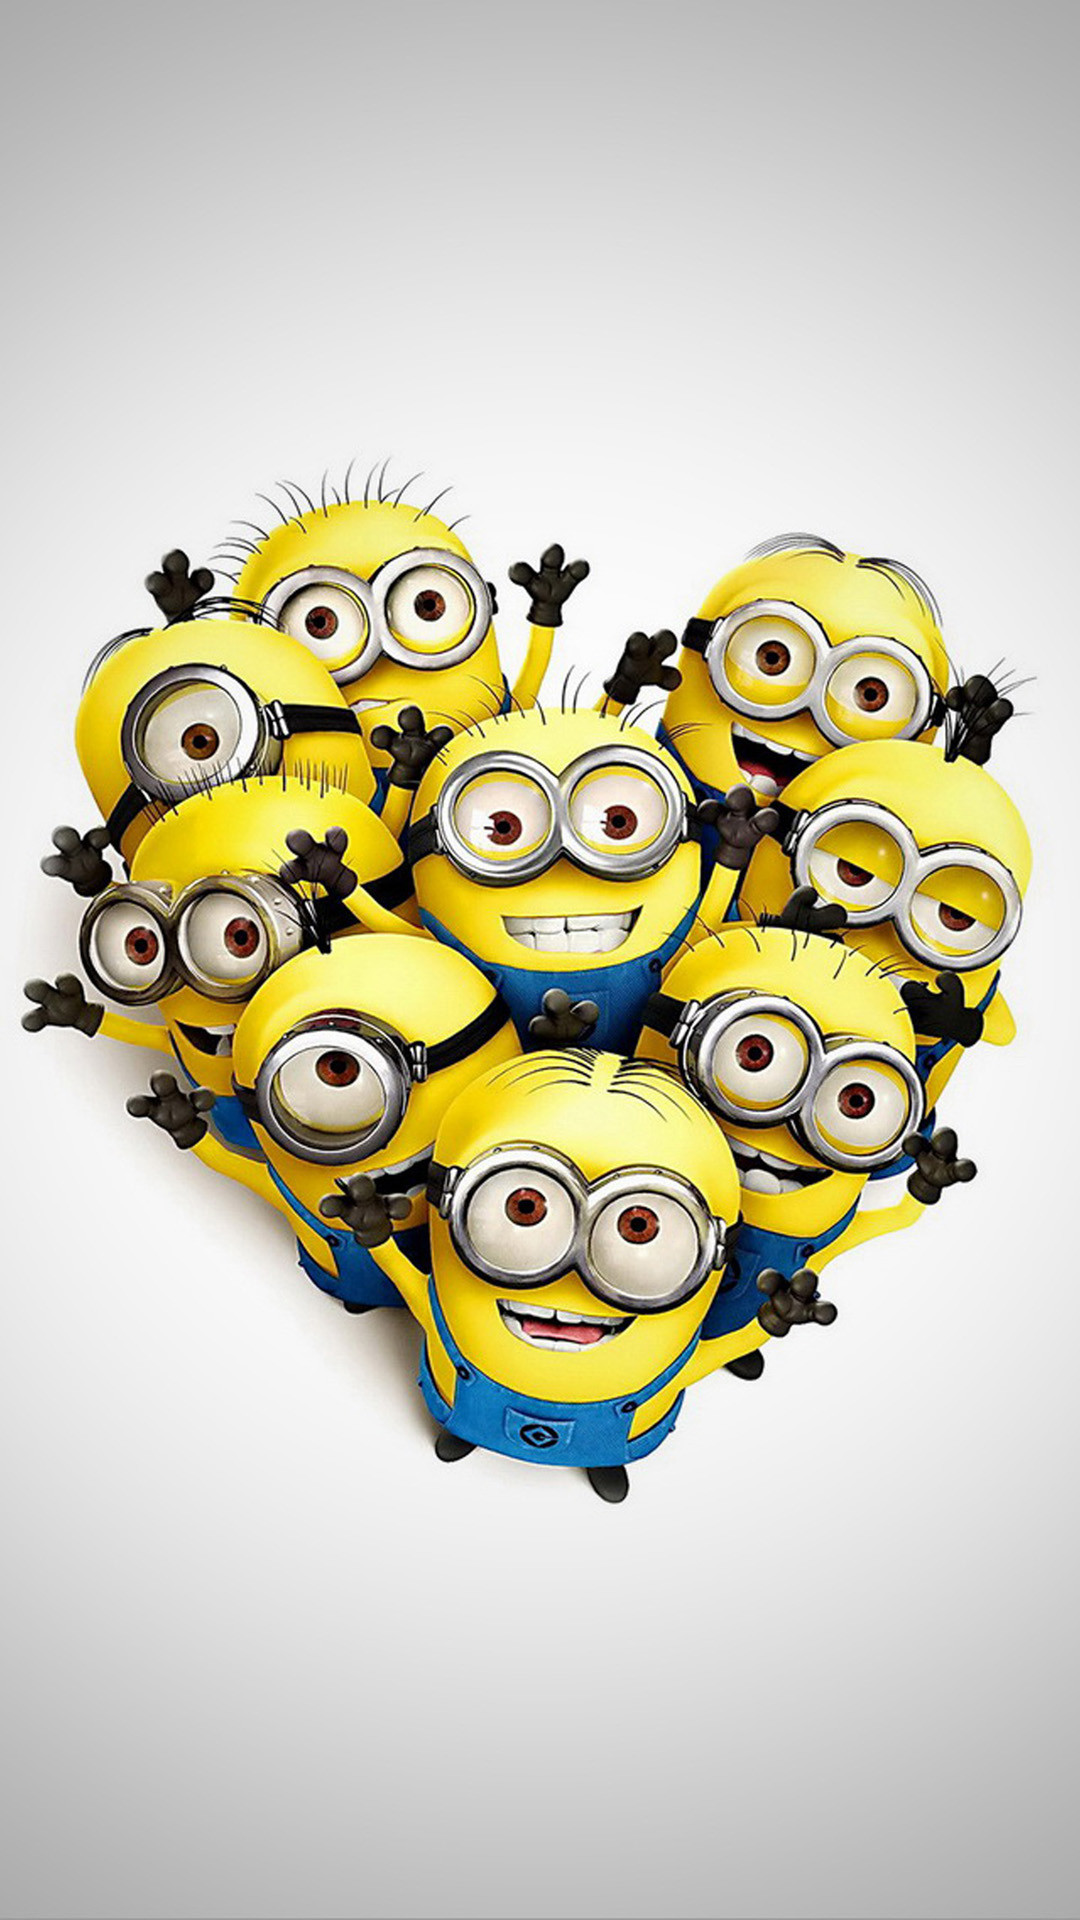 1080x1920 Funny Minions in Heart Shape HD Wallpaper iPhone 6 plus